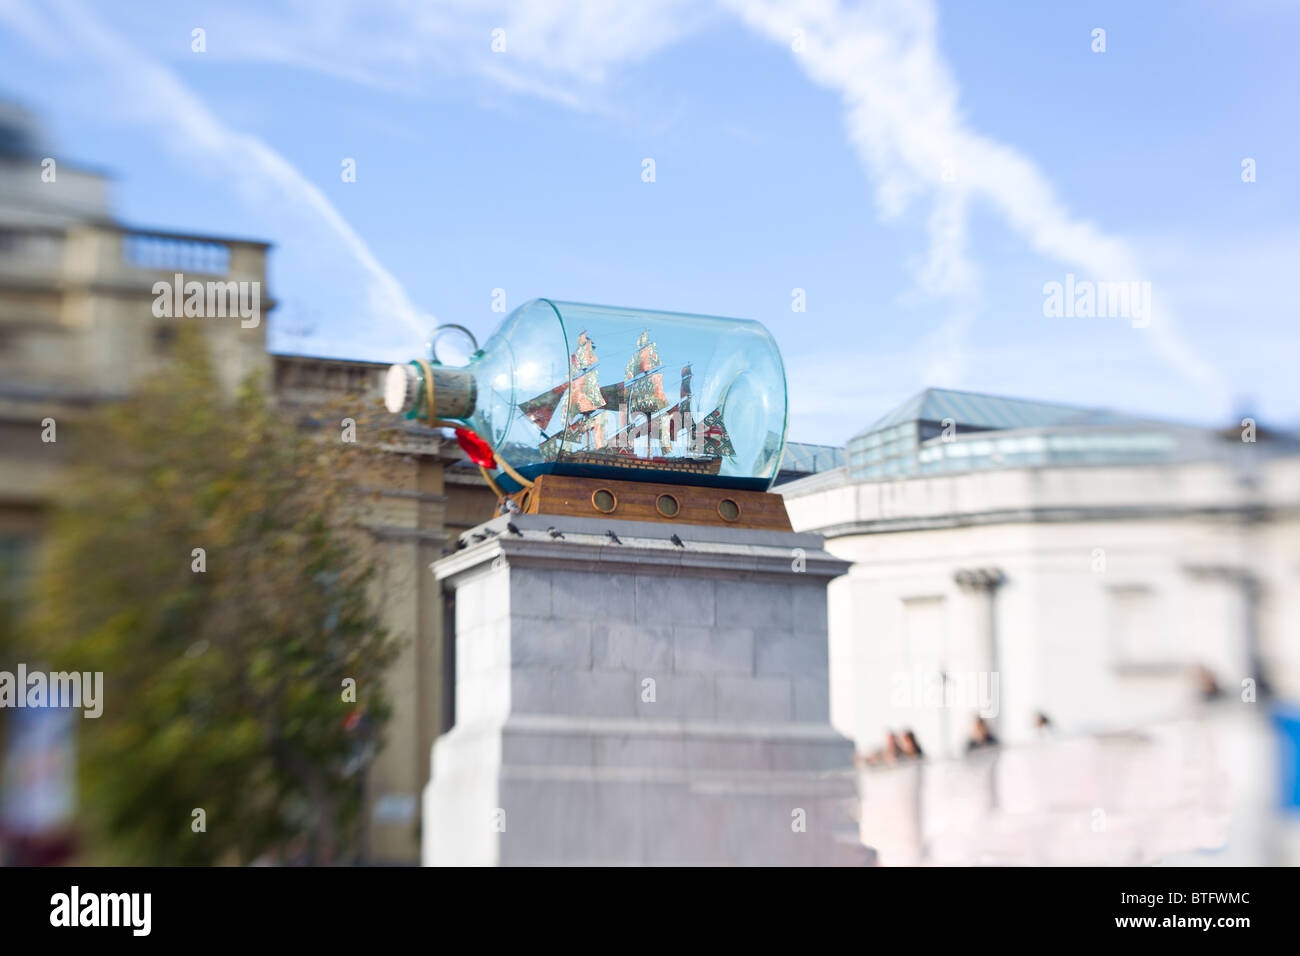 Large Ship In A Bottle Display on the spare fourth plinth in Trafalgar Square London England - Stock Image